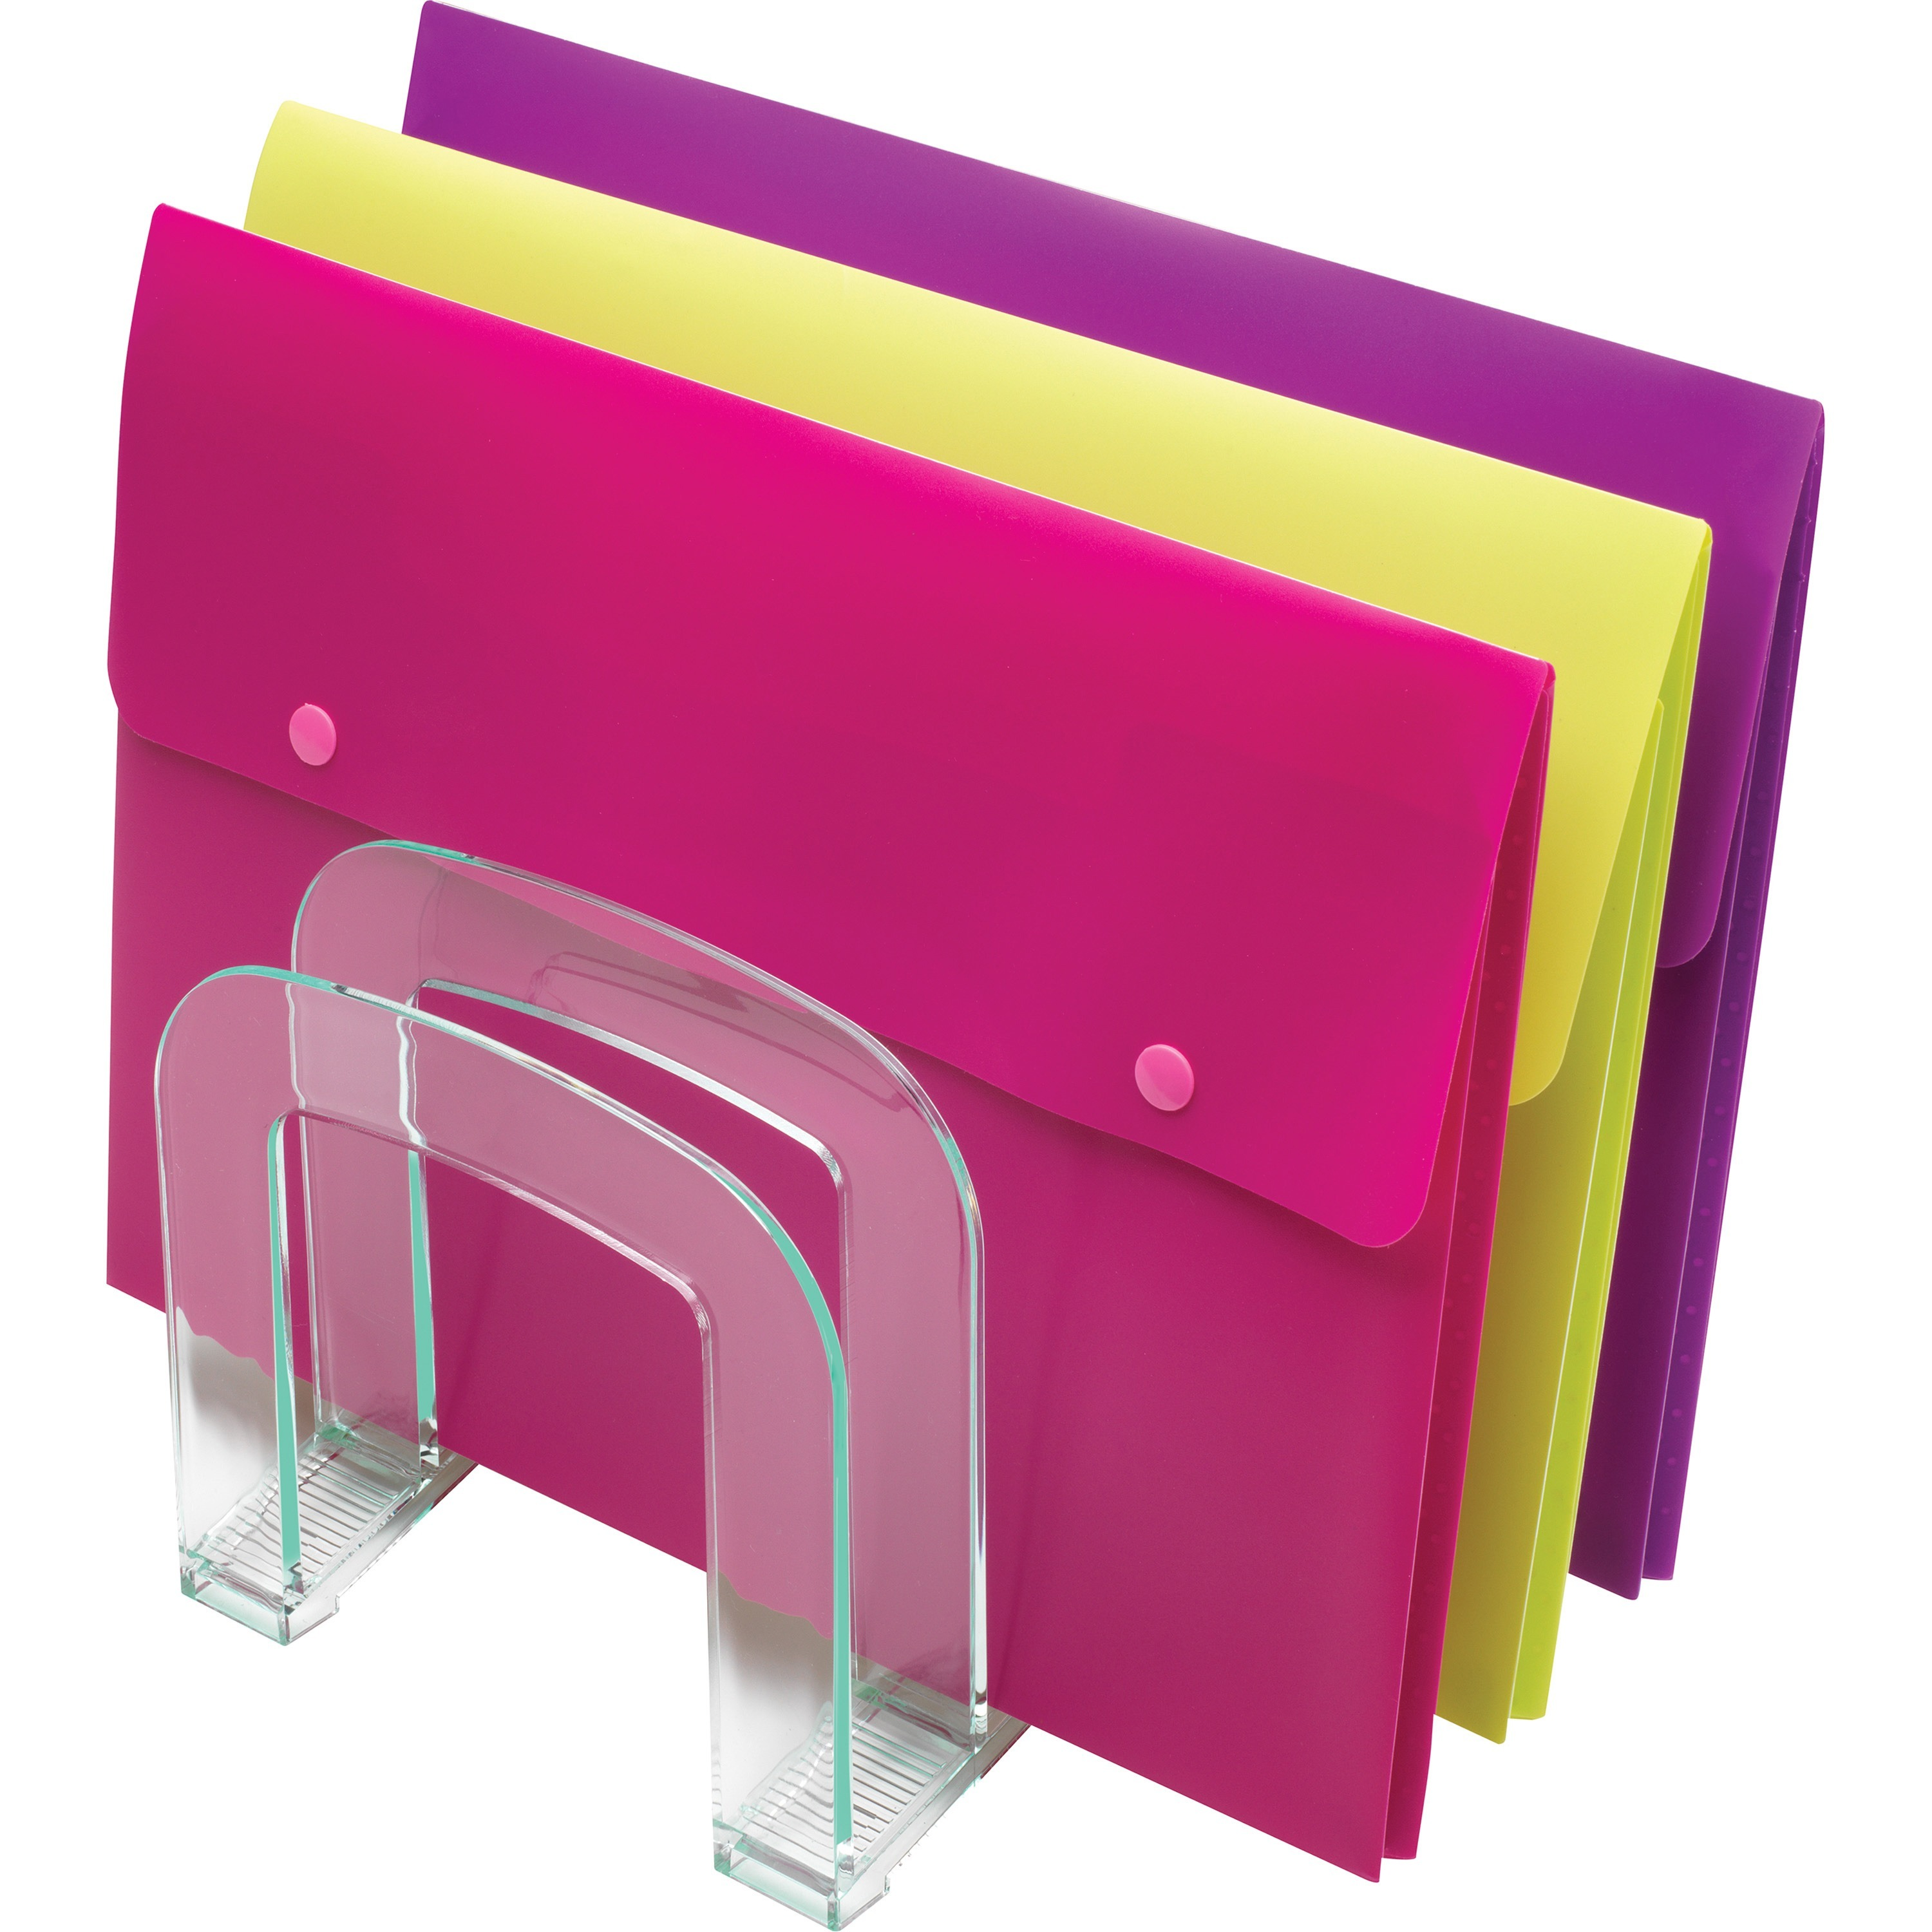 Lorell Stacking Letter Trays - Desktop - Clear, Green - Acrylic - 2 ...